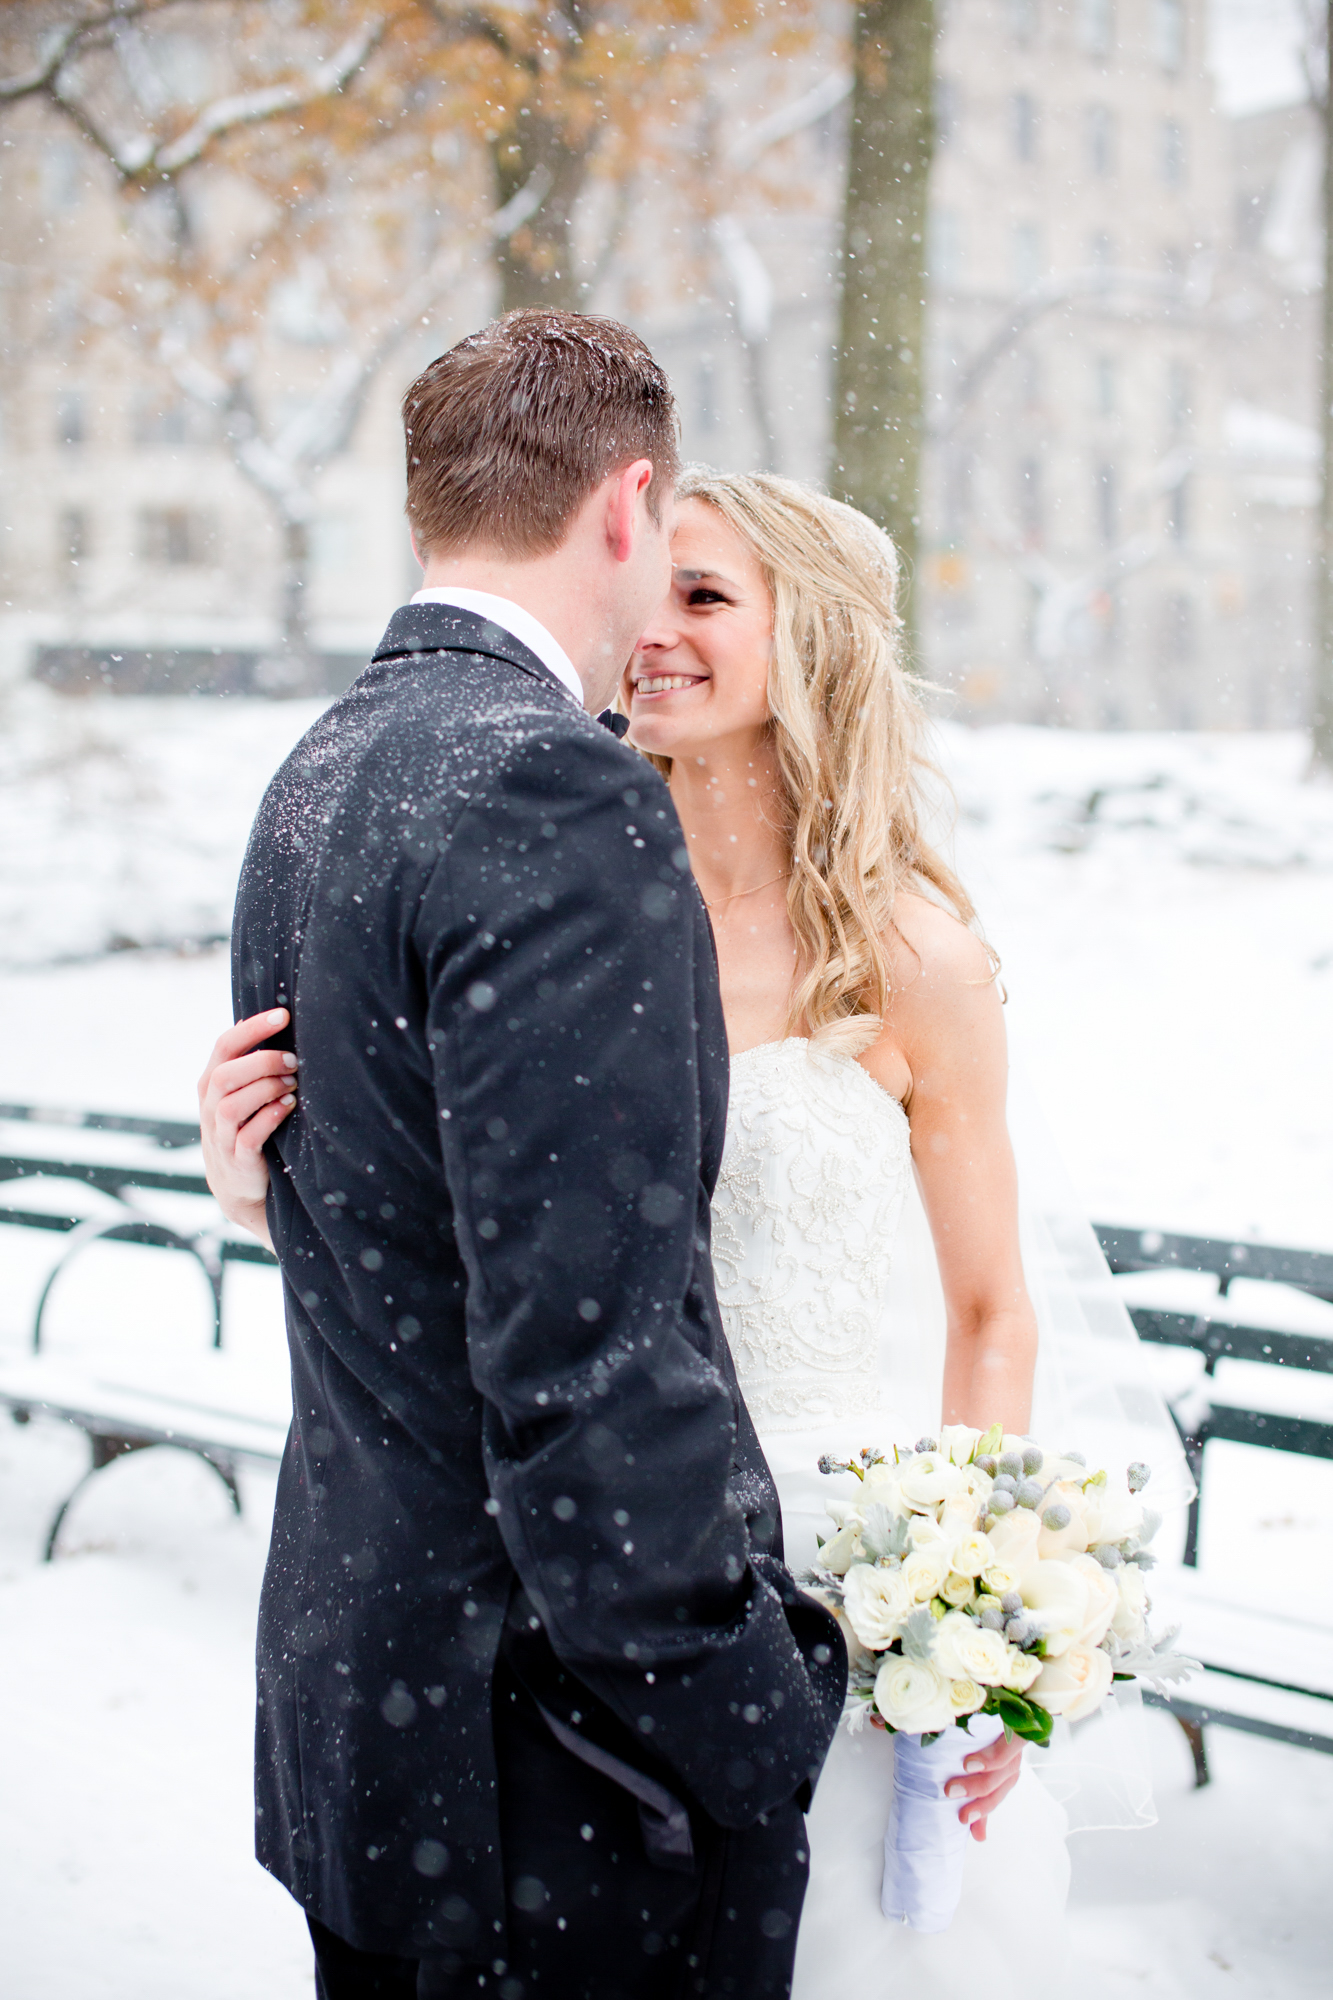 070_CarlyGaebe_SteadfastStudio_WeddingPhotography_NewYorkCity_CentralPark_Winter_Romantic_Snowing_Bride_Groom_Bouquet_Ring.jpg